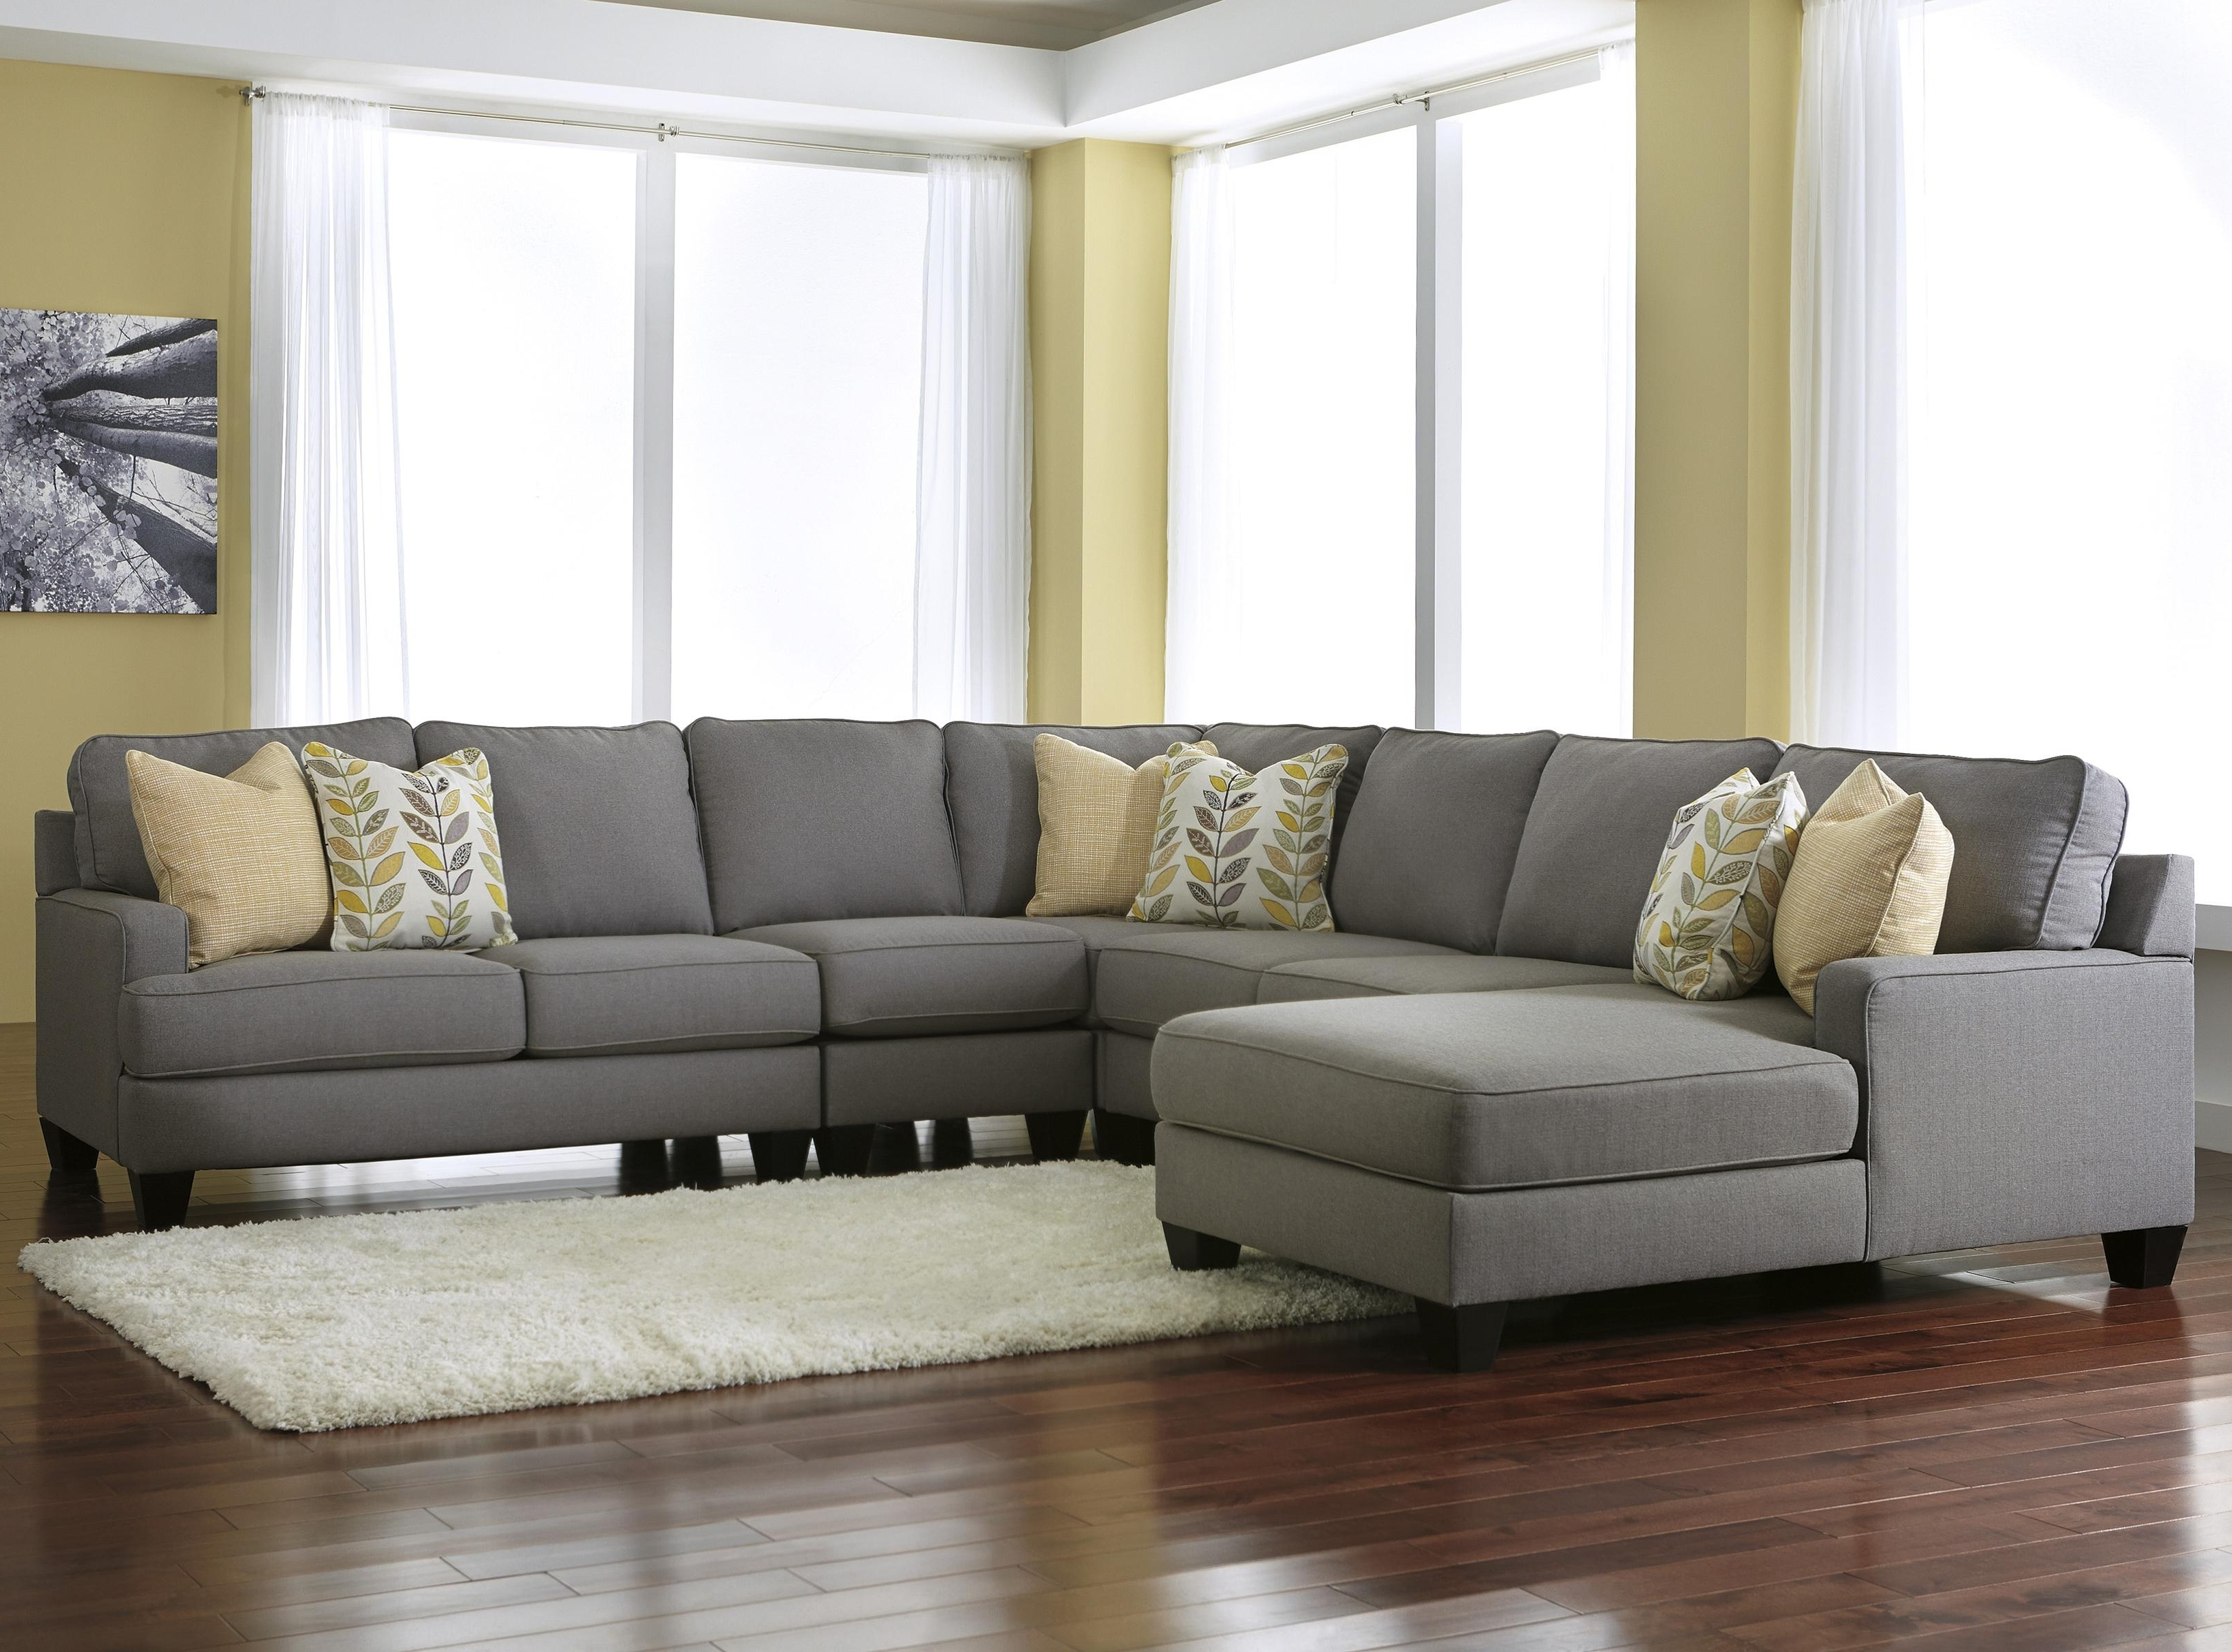 Johnny Janosik Sectional Sofas With Regard To Trendy Signature Designashley Chamberly – Alloy Modern 5 Piece (View 7 of 15)